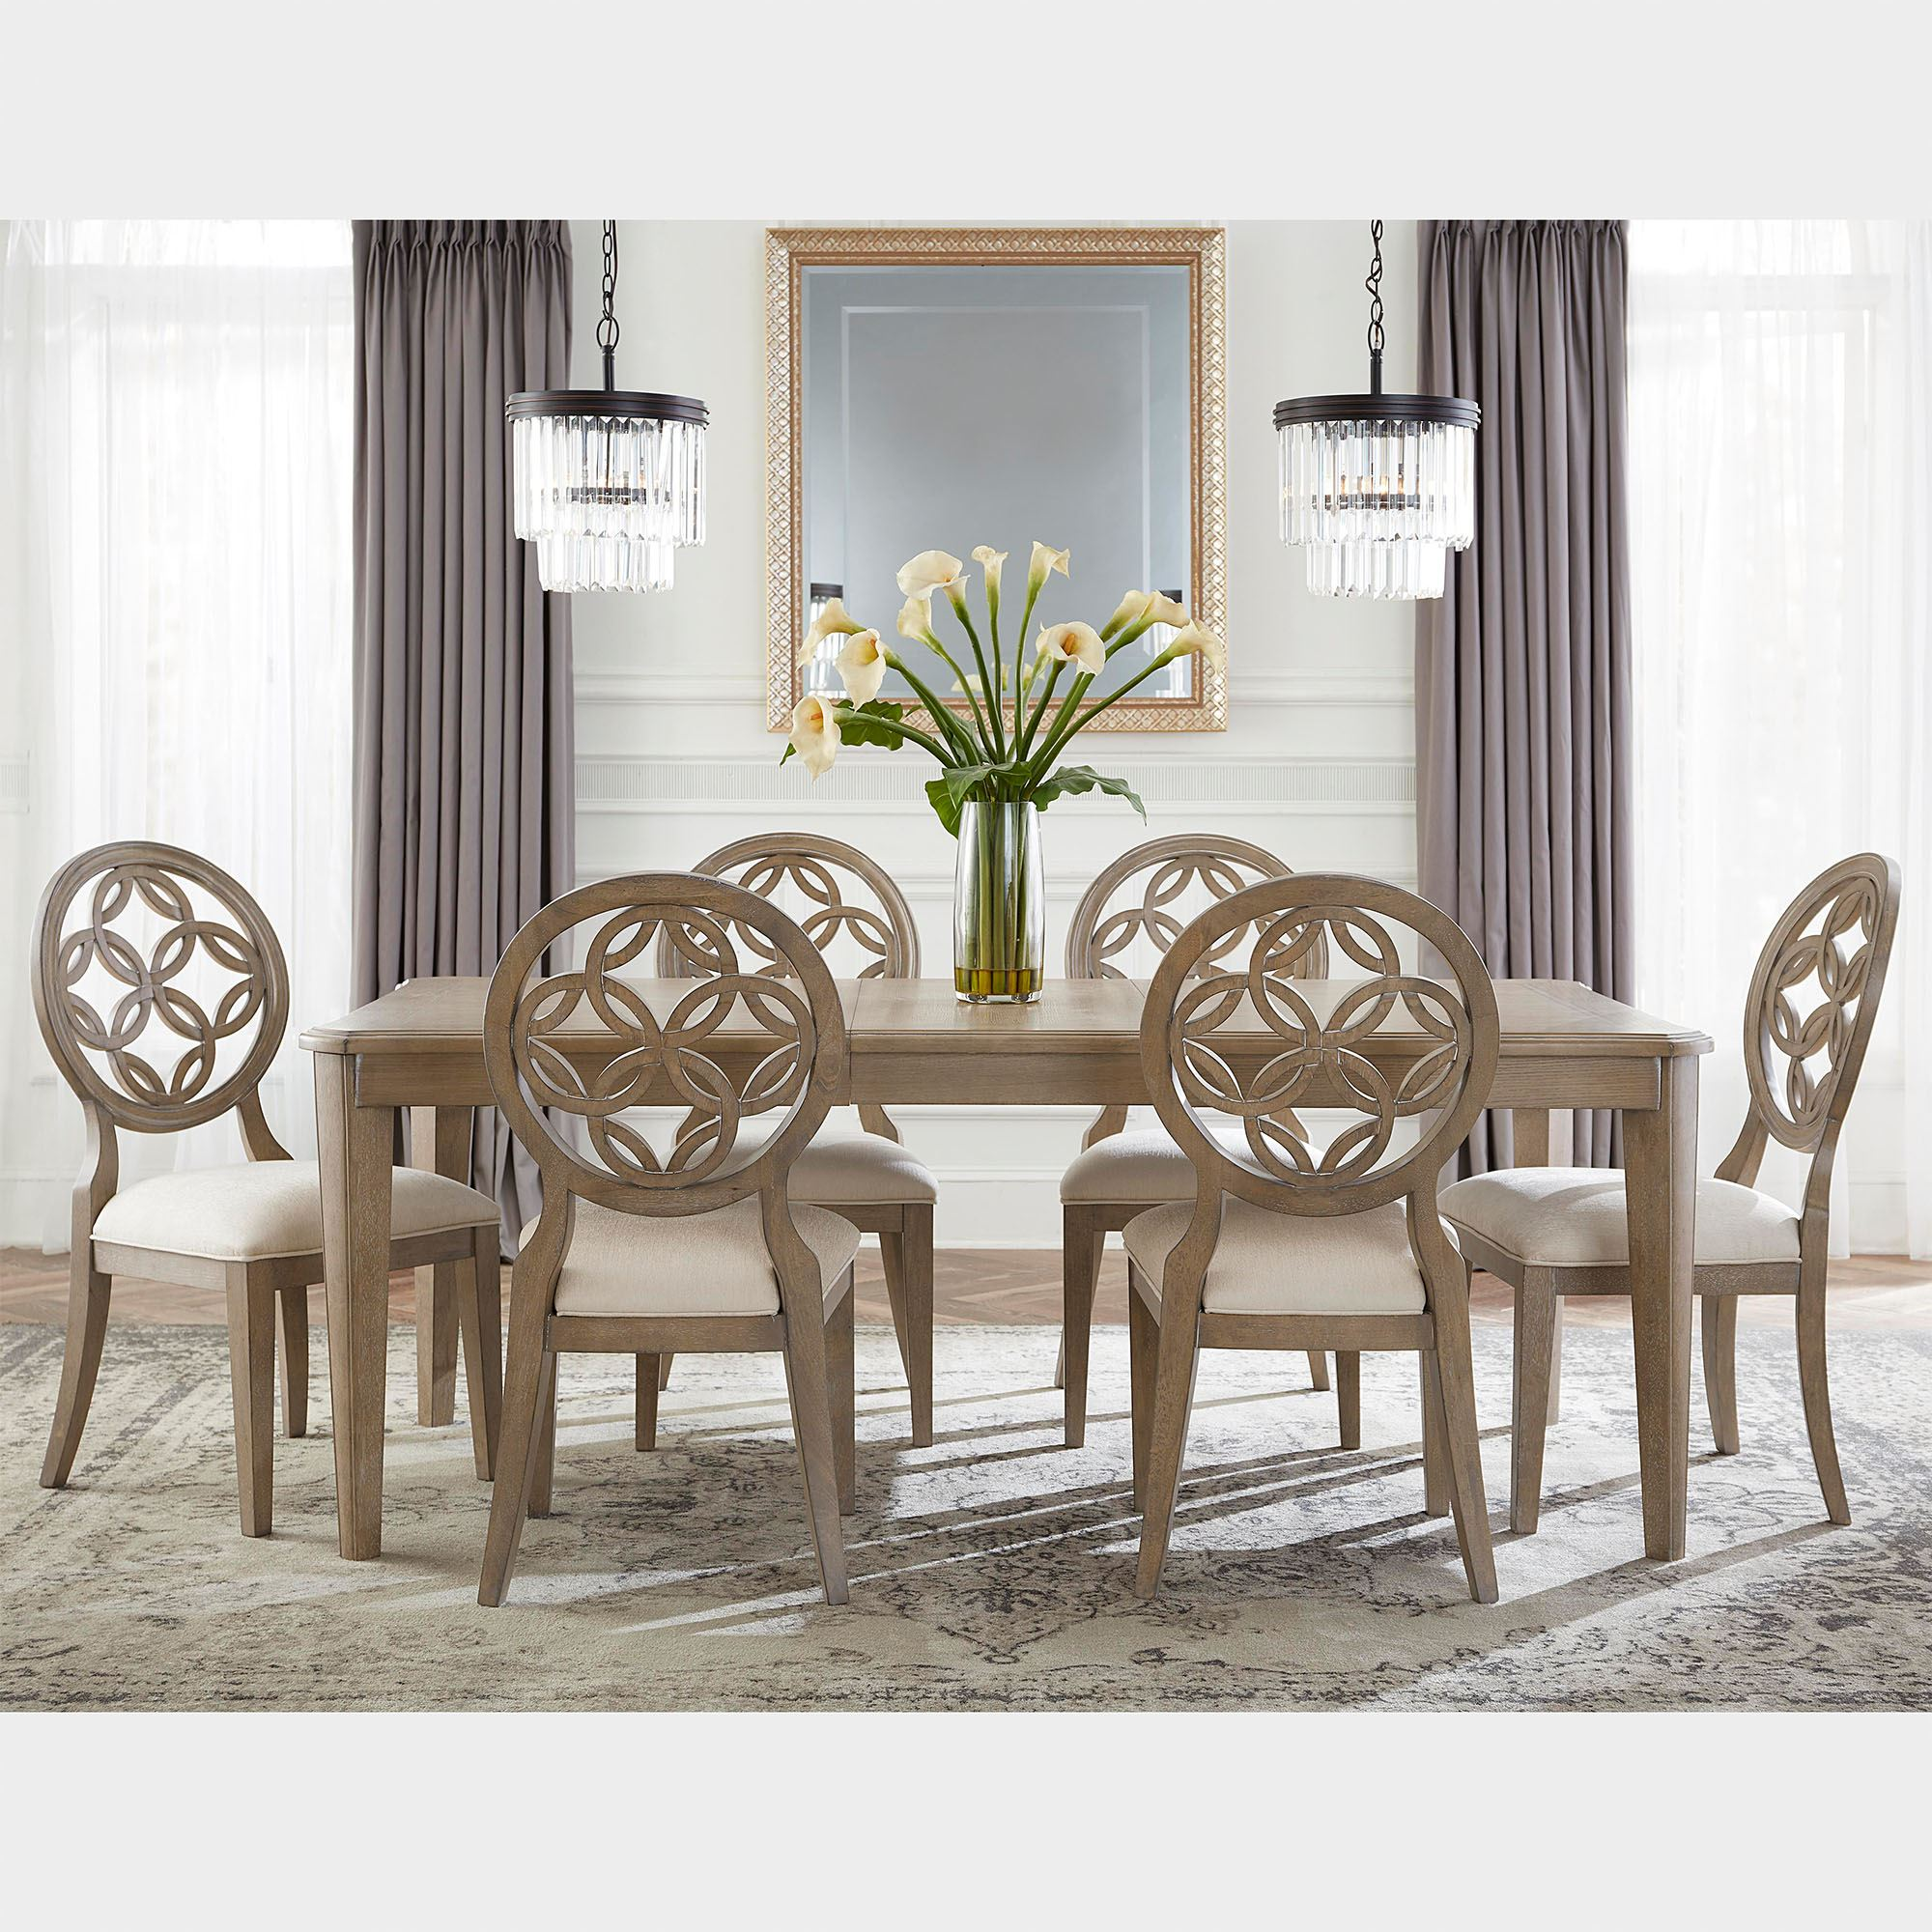 Hollace Wooden Rectangle Dining Table And Chairs 7 Pc Set